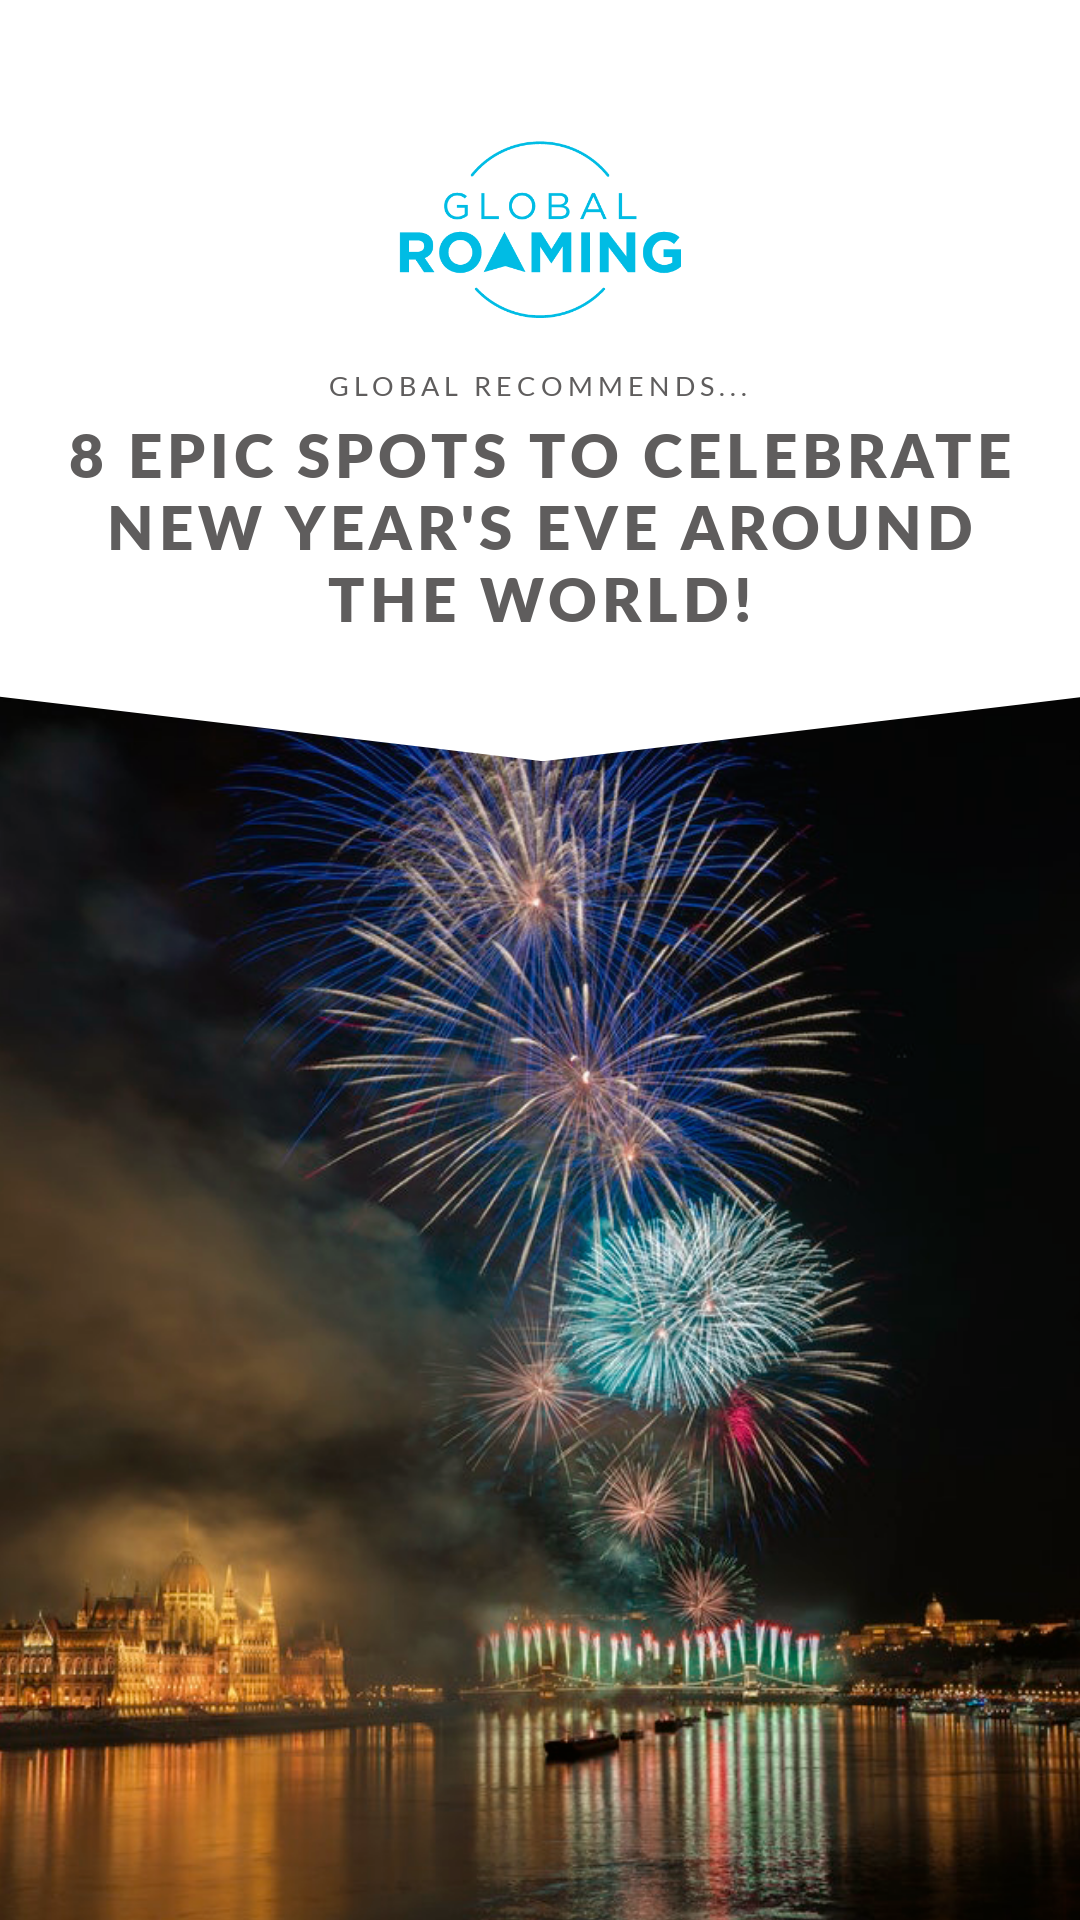 8 Epic Spots to Celebrate New Year's Eve Around the World